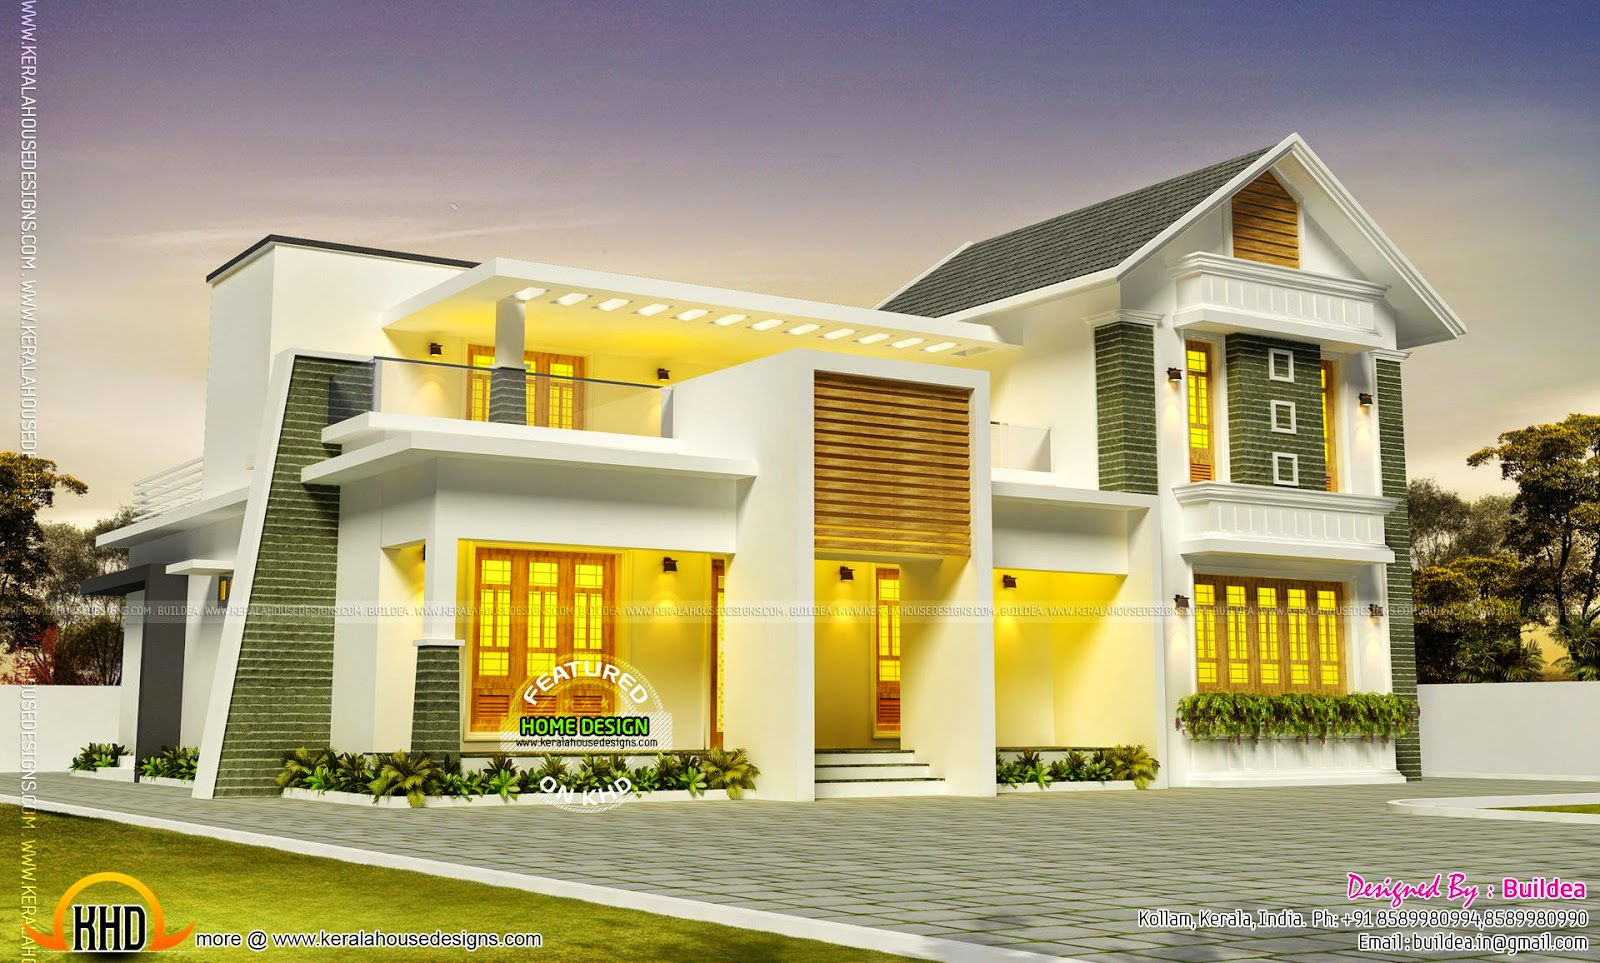 Beautiful house design in kollam kerala home design and for Home by design